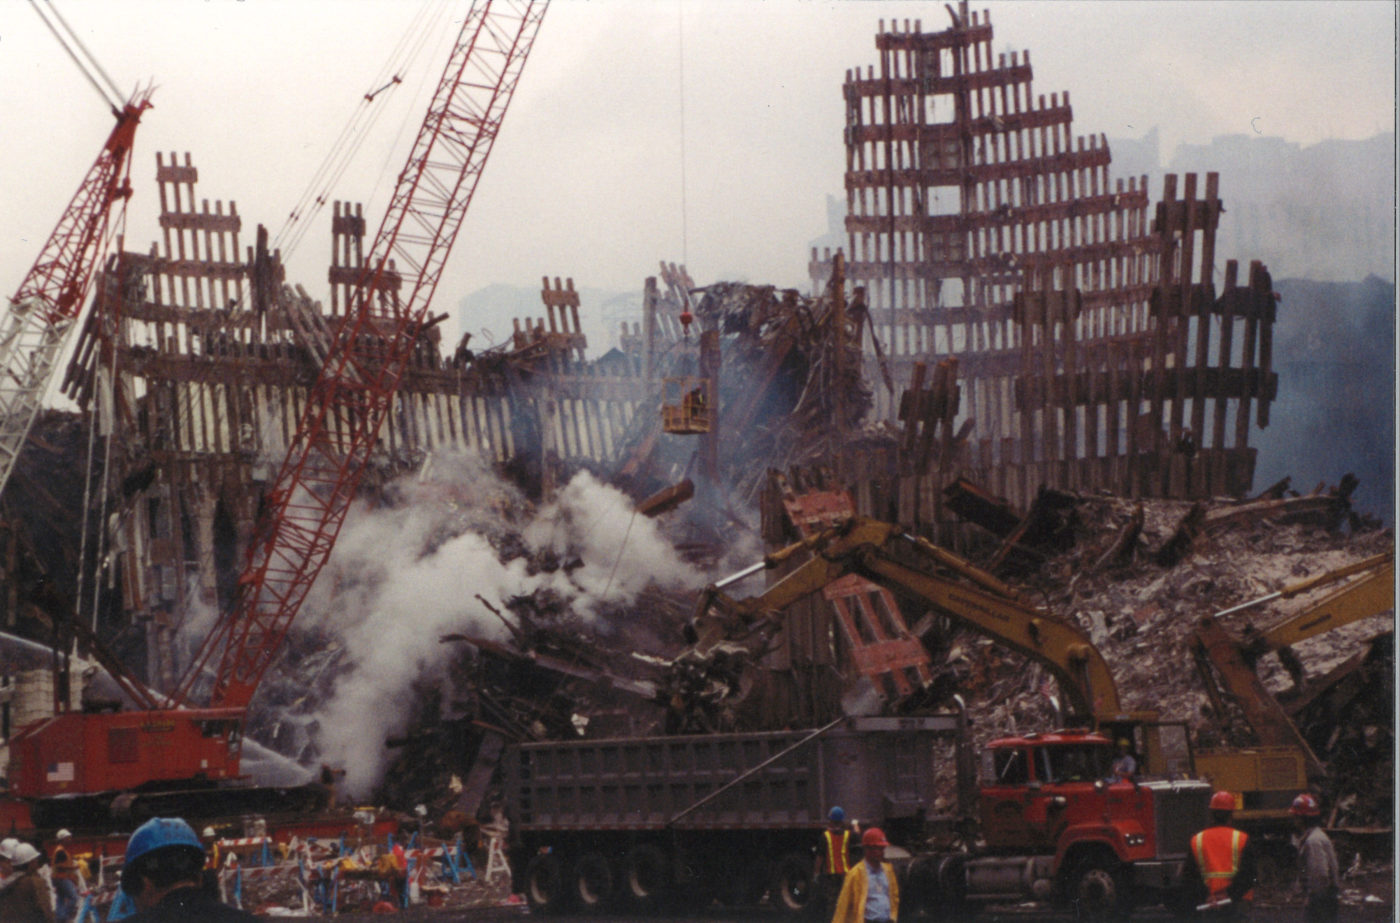 Diggers, cranes, dumptrucks, and men working in the still smoking rubble